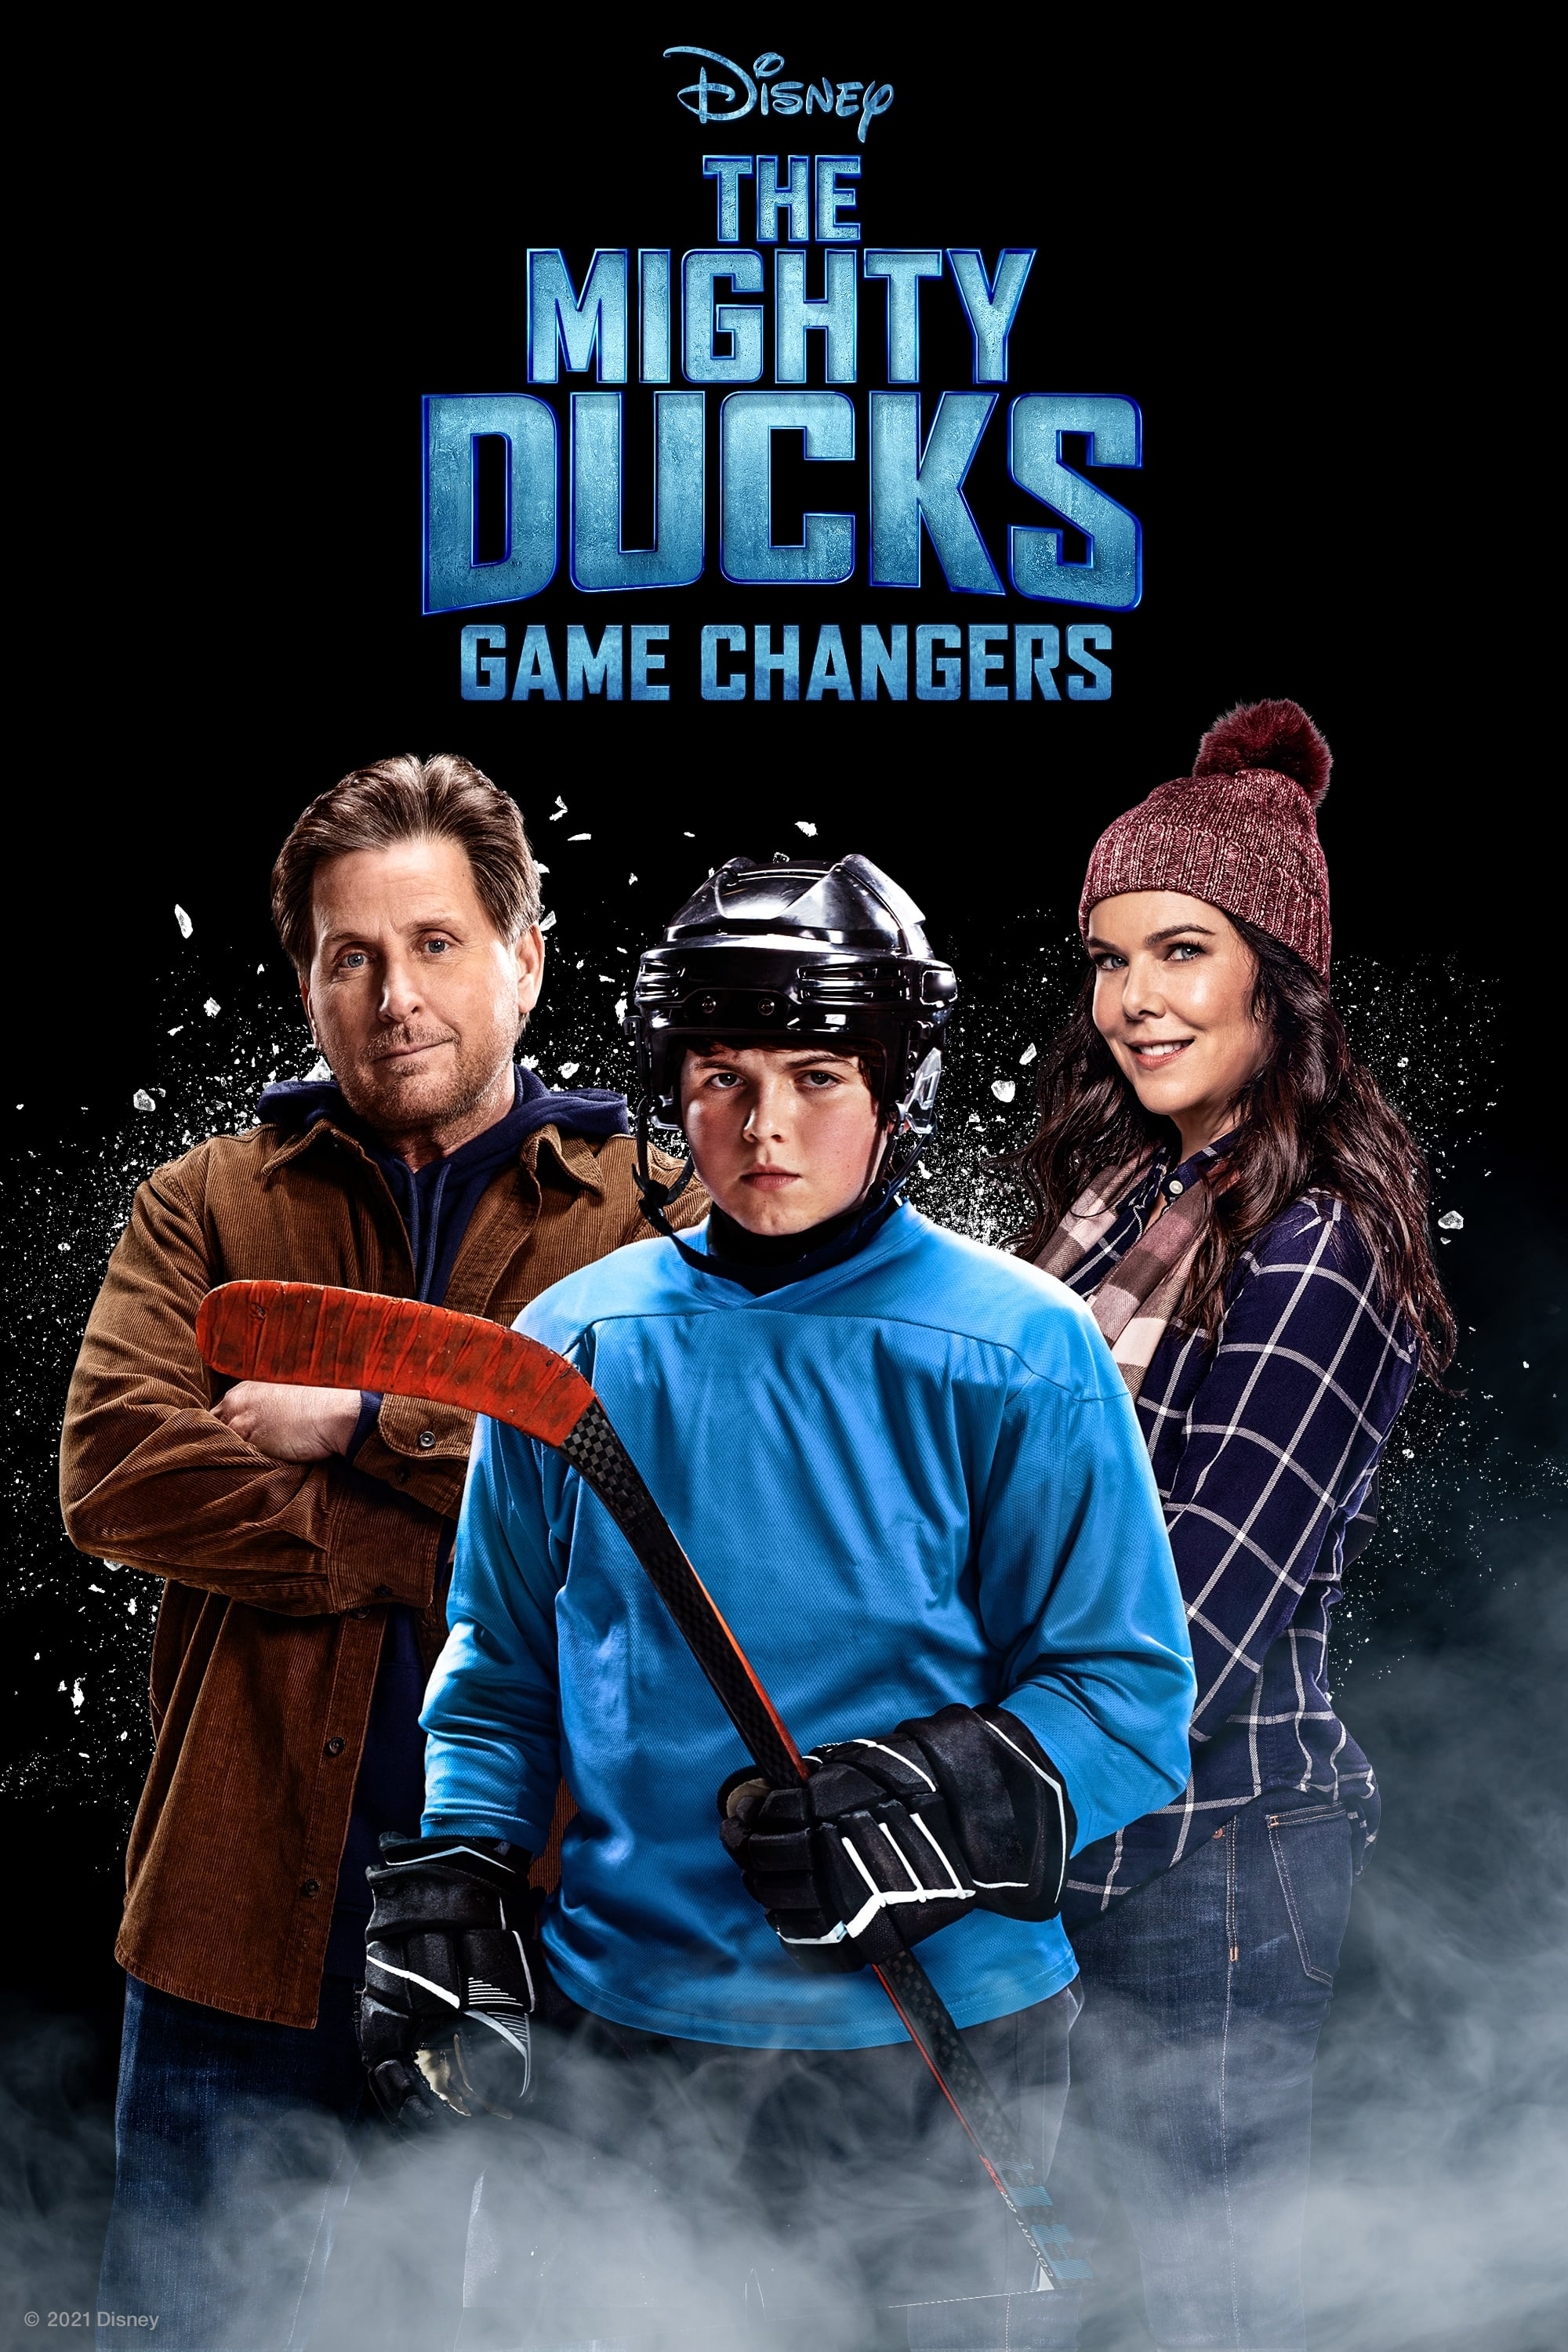 Image The Mighty Ducks: Game Changers